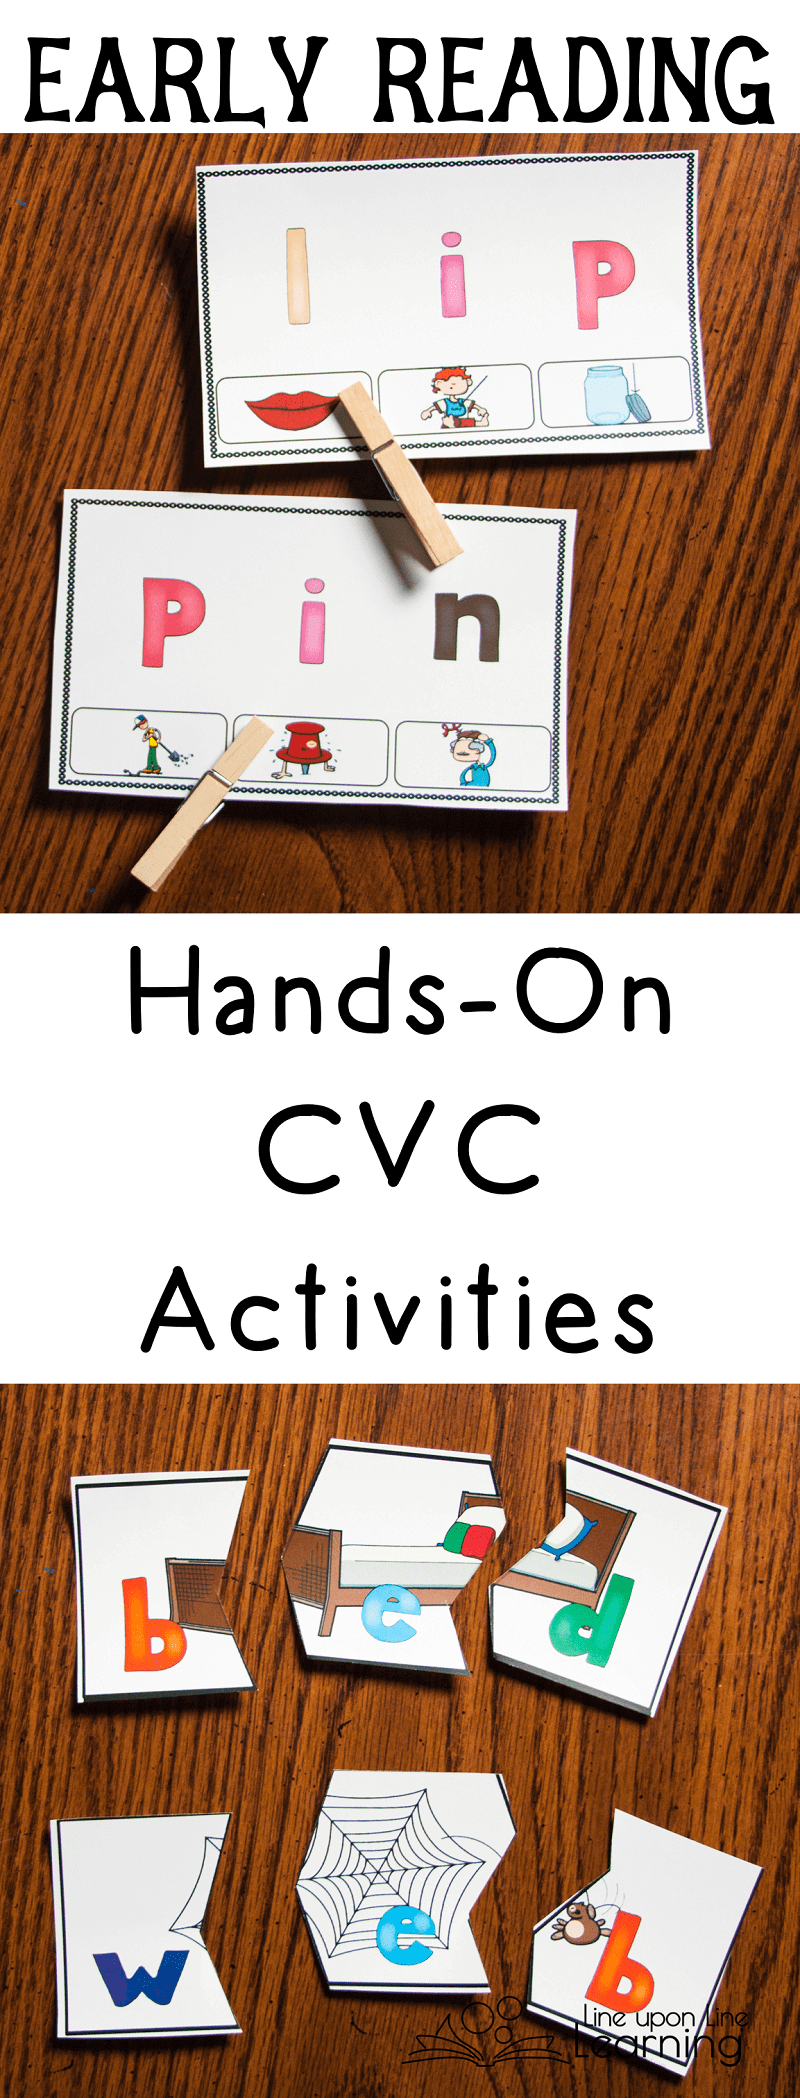 Cursive Modern besides Single Page Letter Reversal Poster Posted At Student Desk further Early Reading Hands On Cvc Activities furthermore Au further B Fig. on letter reversals